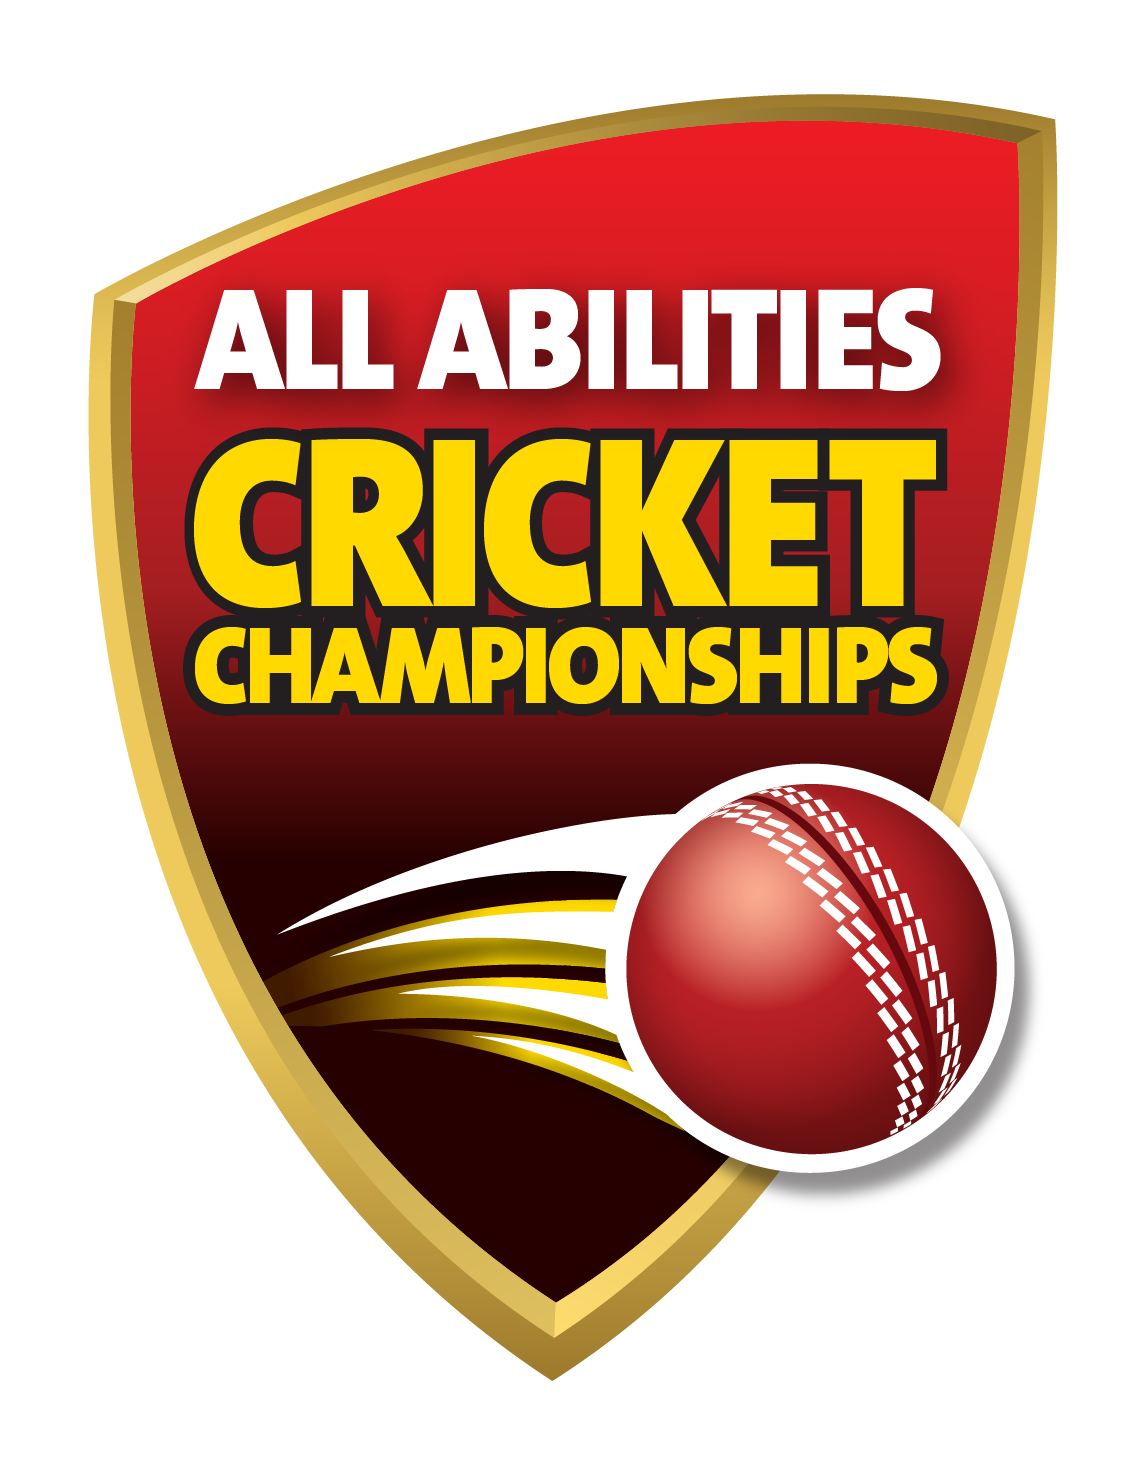 A new tournament featuring cricketers with intellectual disability is due to start in Melbourne tomorrow ©Victoria Cricket